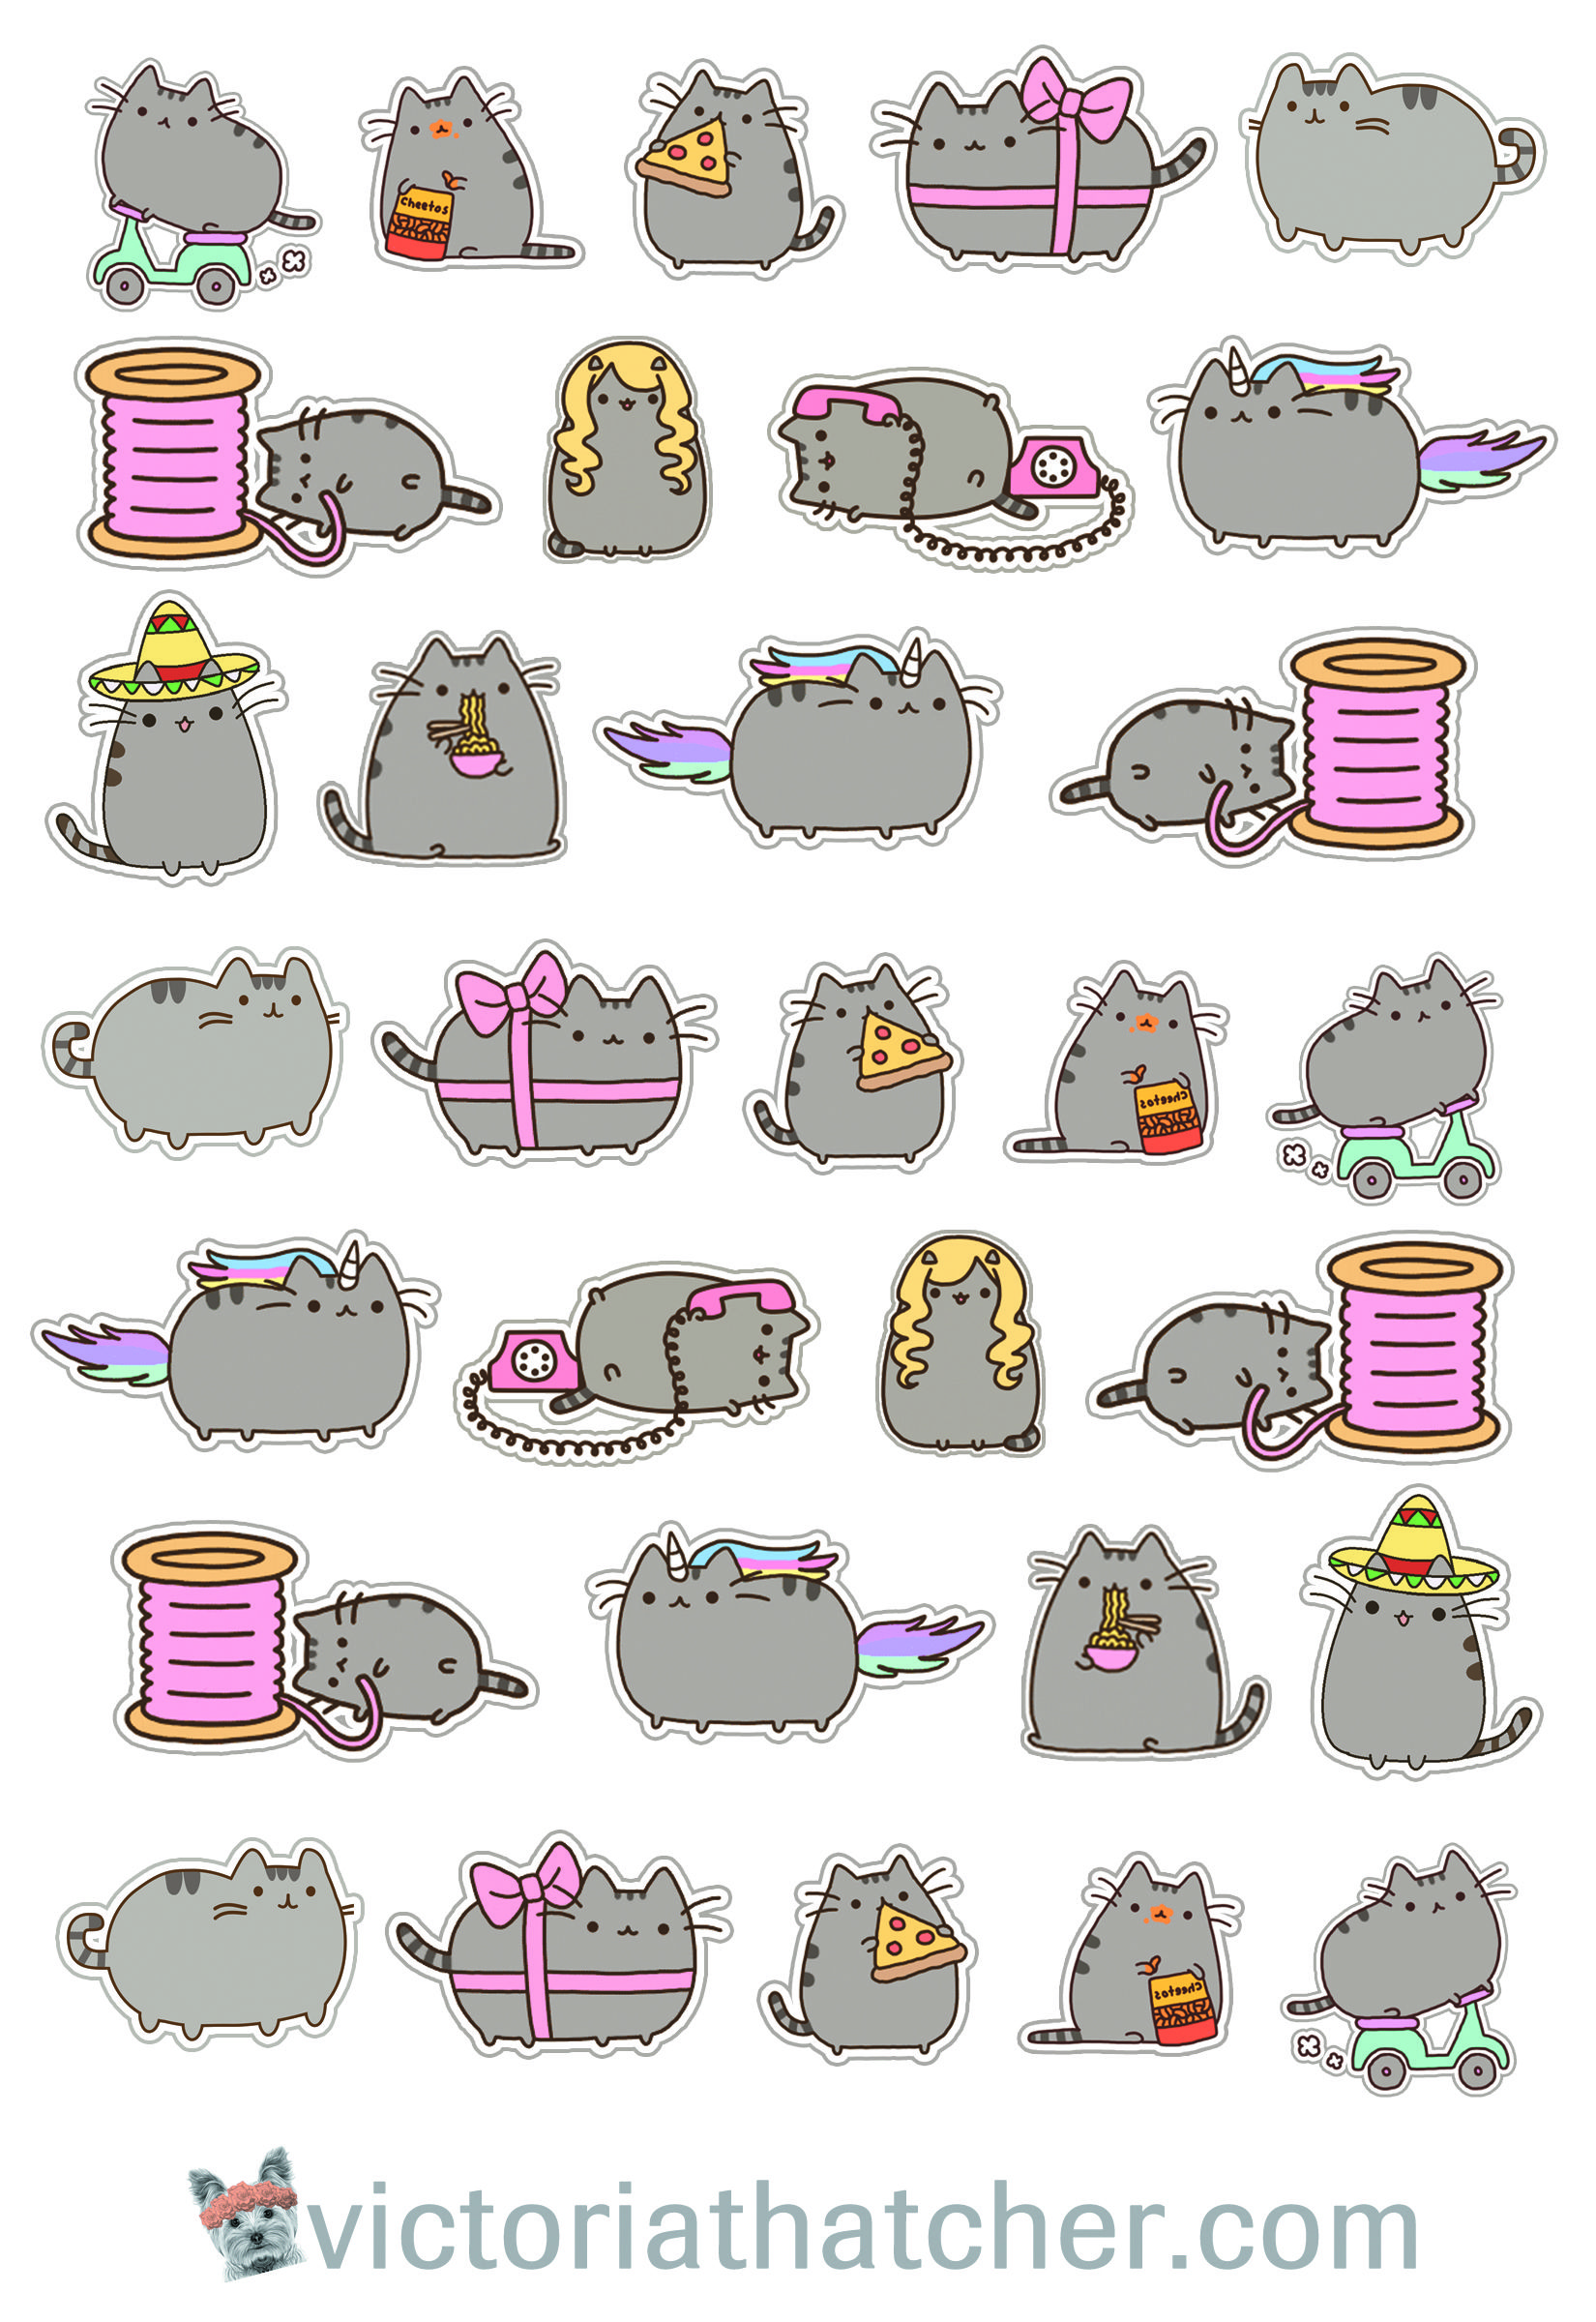 picture relating to Pusheen Printable named No cost Printable Cricut Prepared Pusheen Cat Planner Stickers